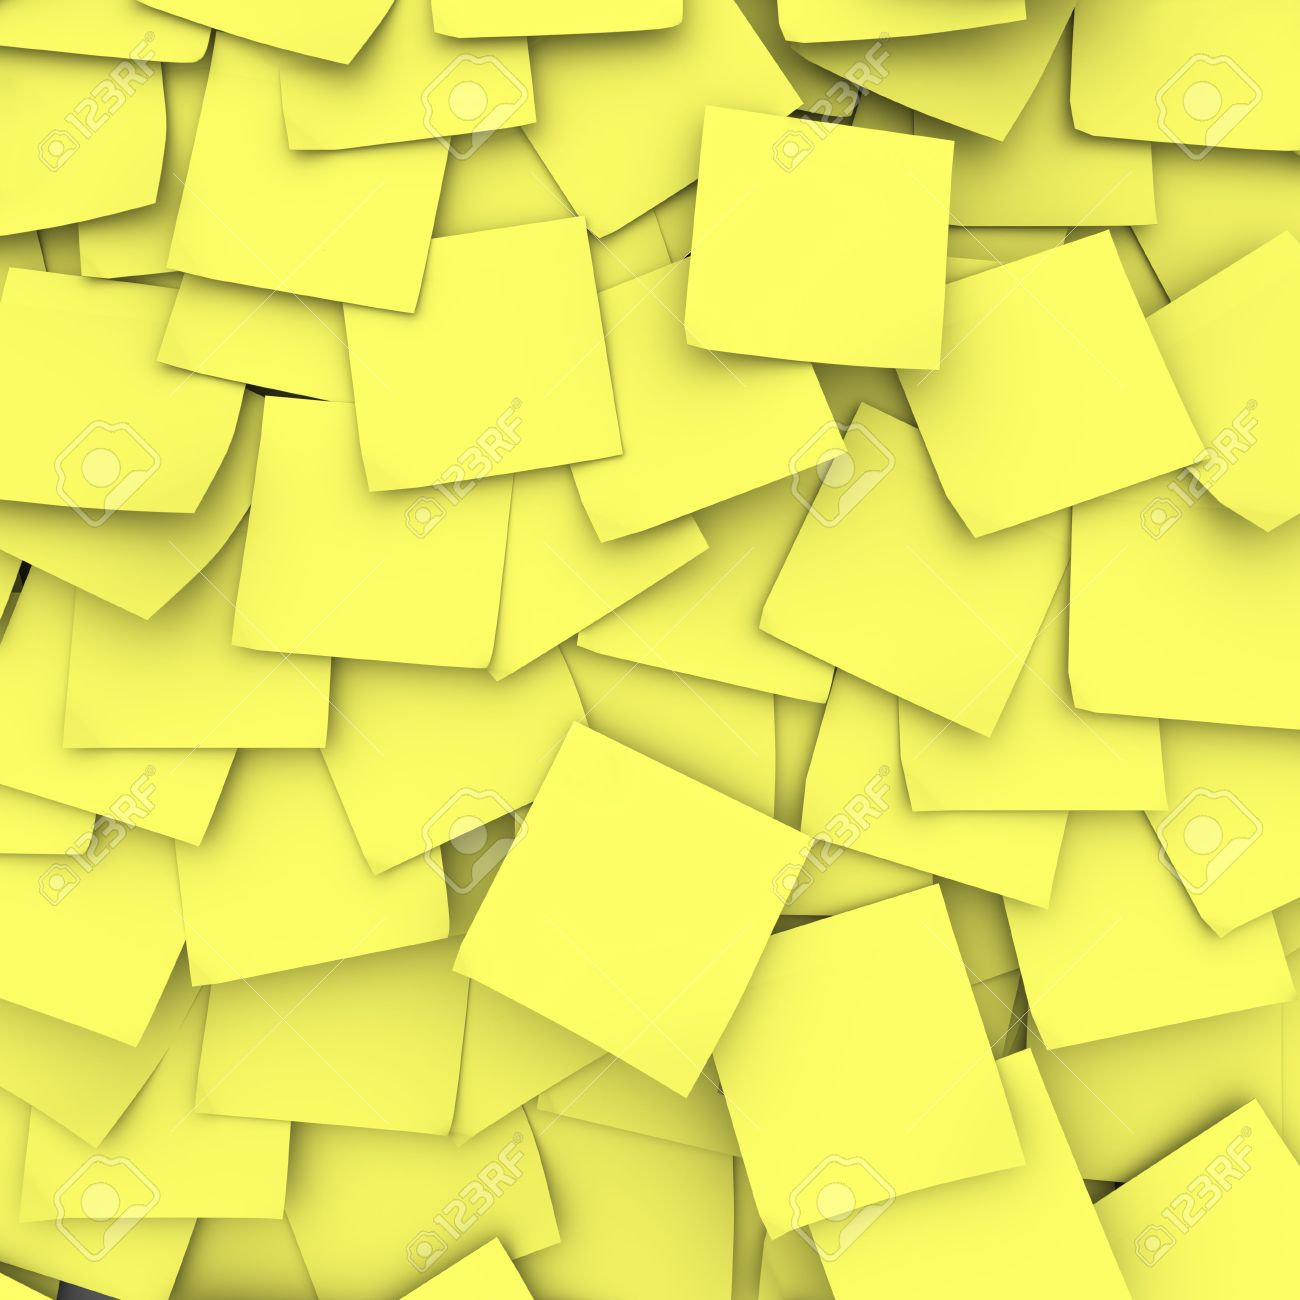 Many yellow sticky notes form a background Stock Photo - 5461730